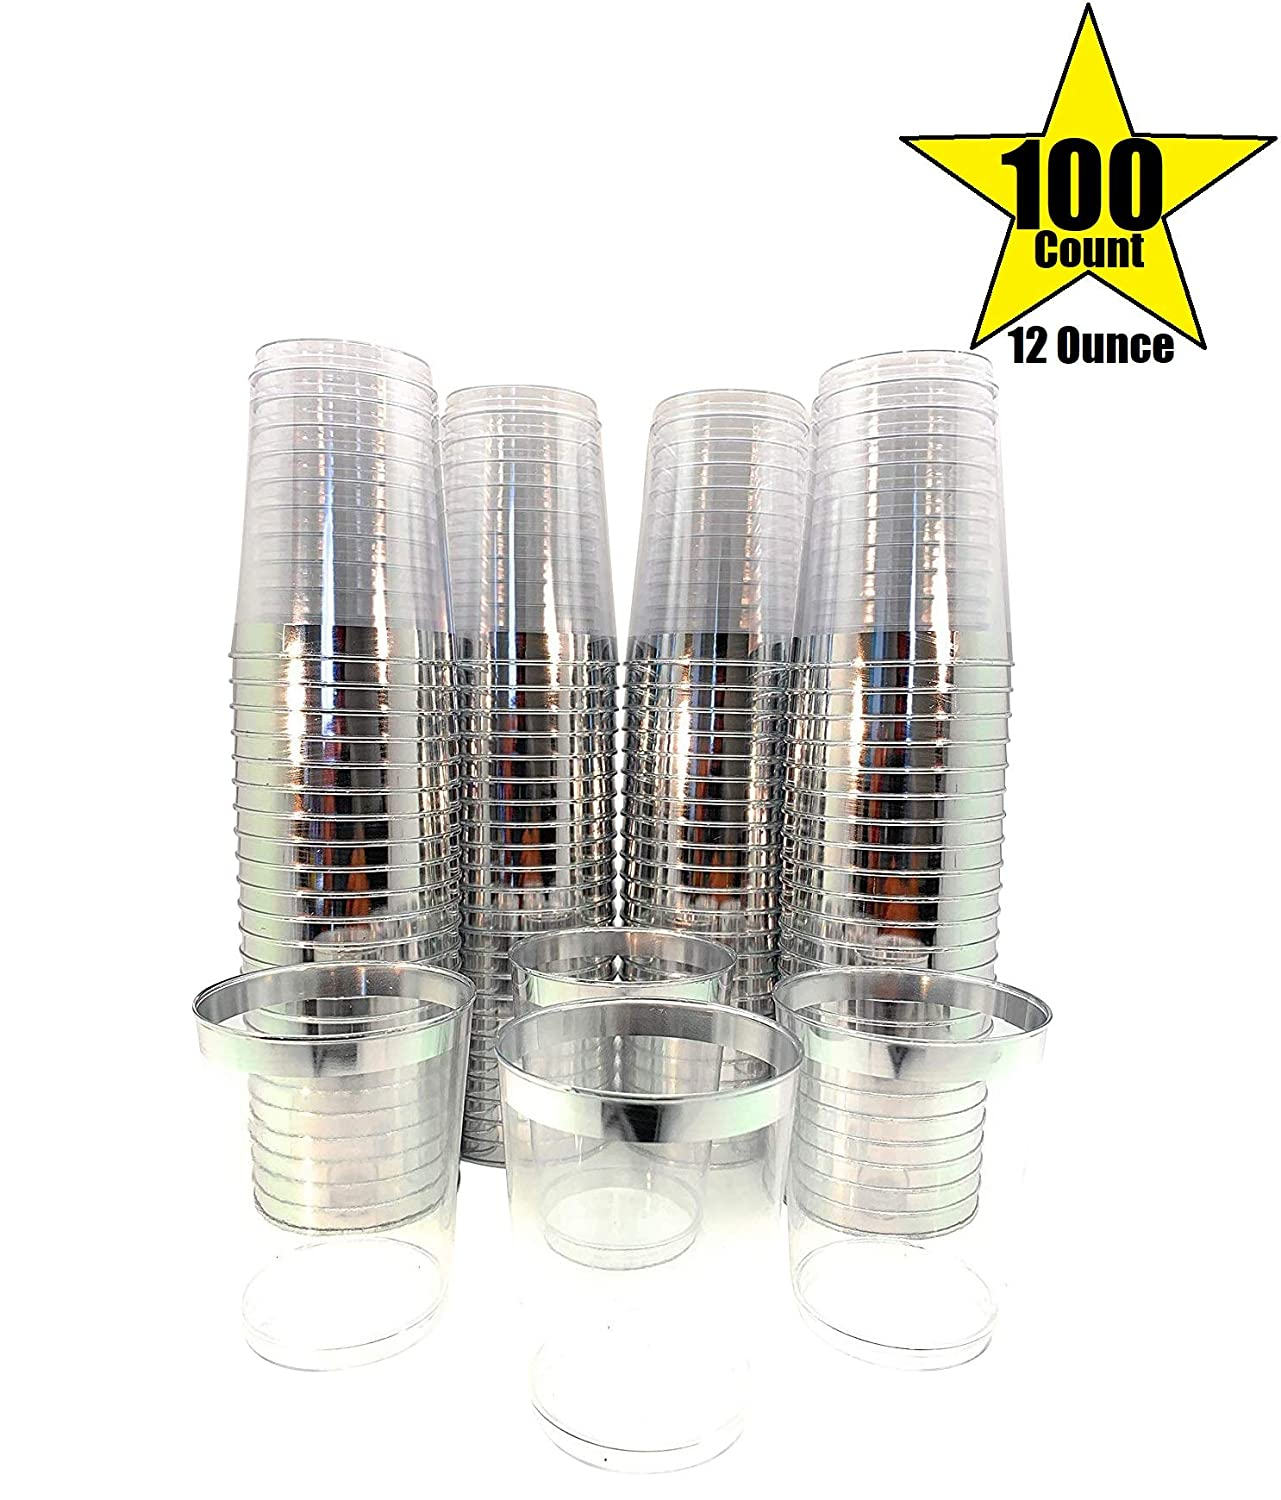 Amazon.com: 100 Count Hard Plastic 12 Ounce Party Clear Cups ...